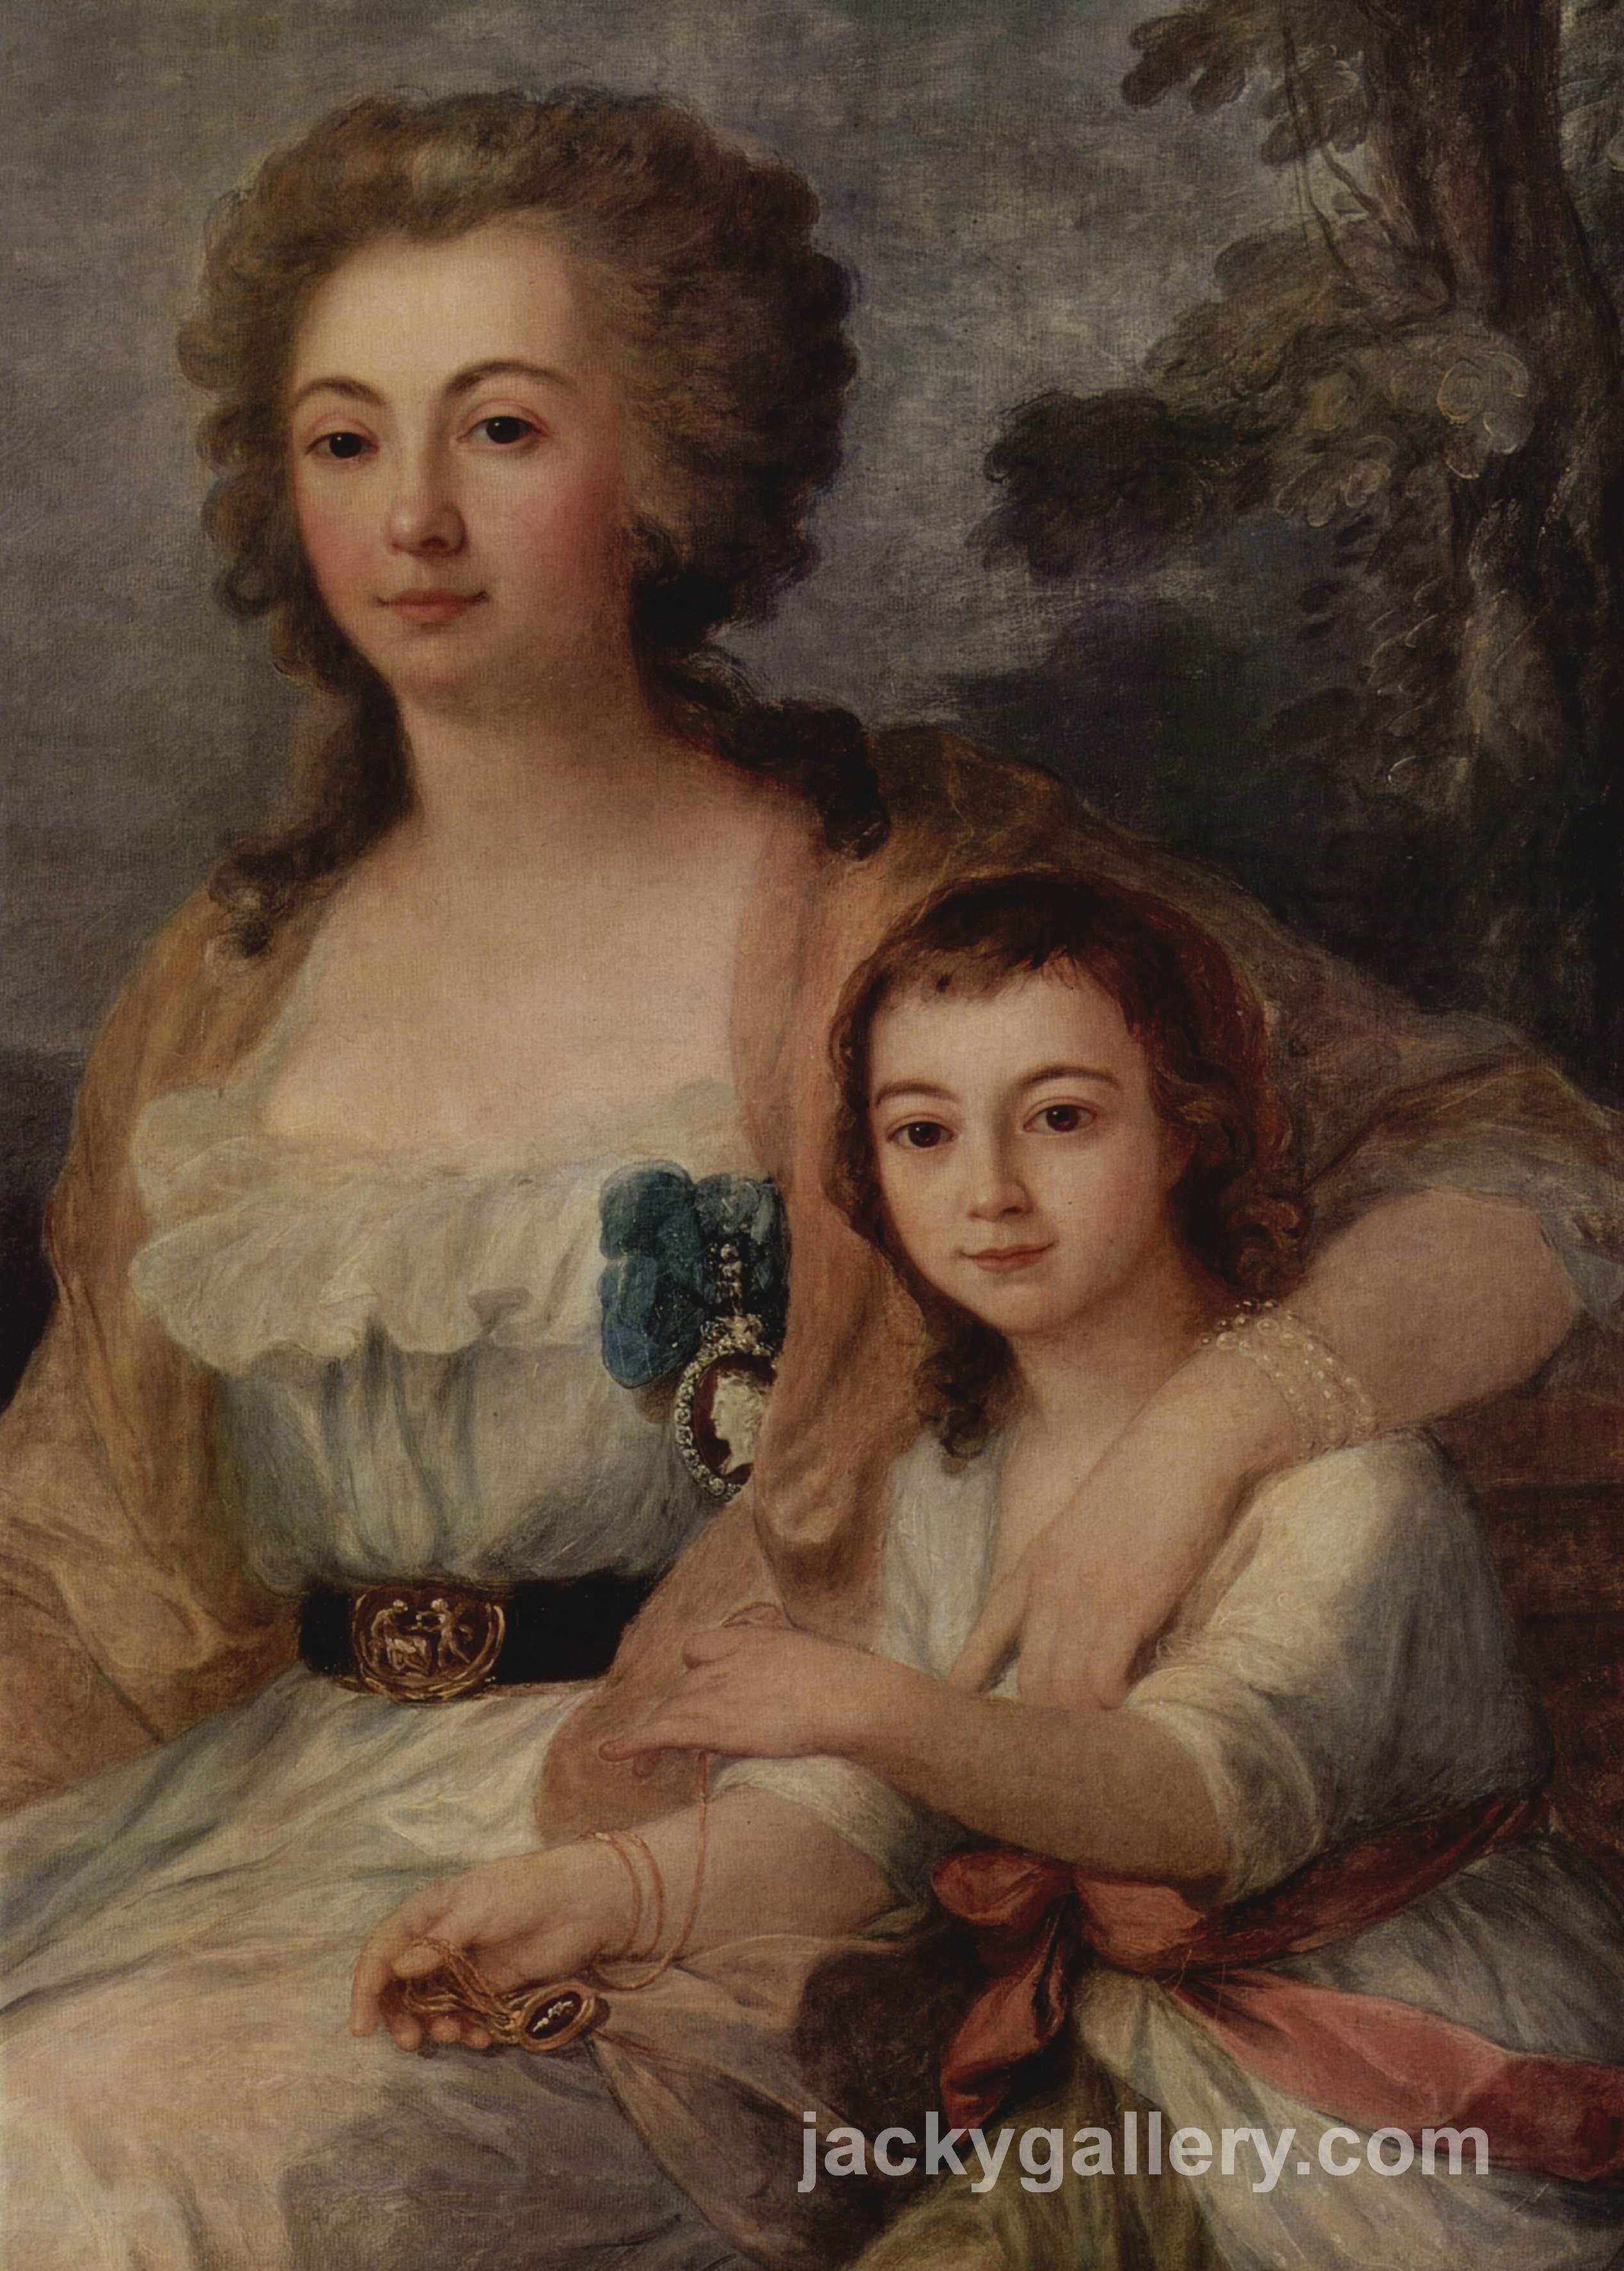 Countess Anna Protassowa with niece, Angelica Kauffman painting